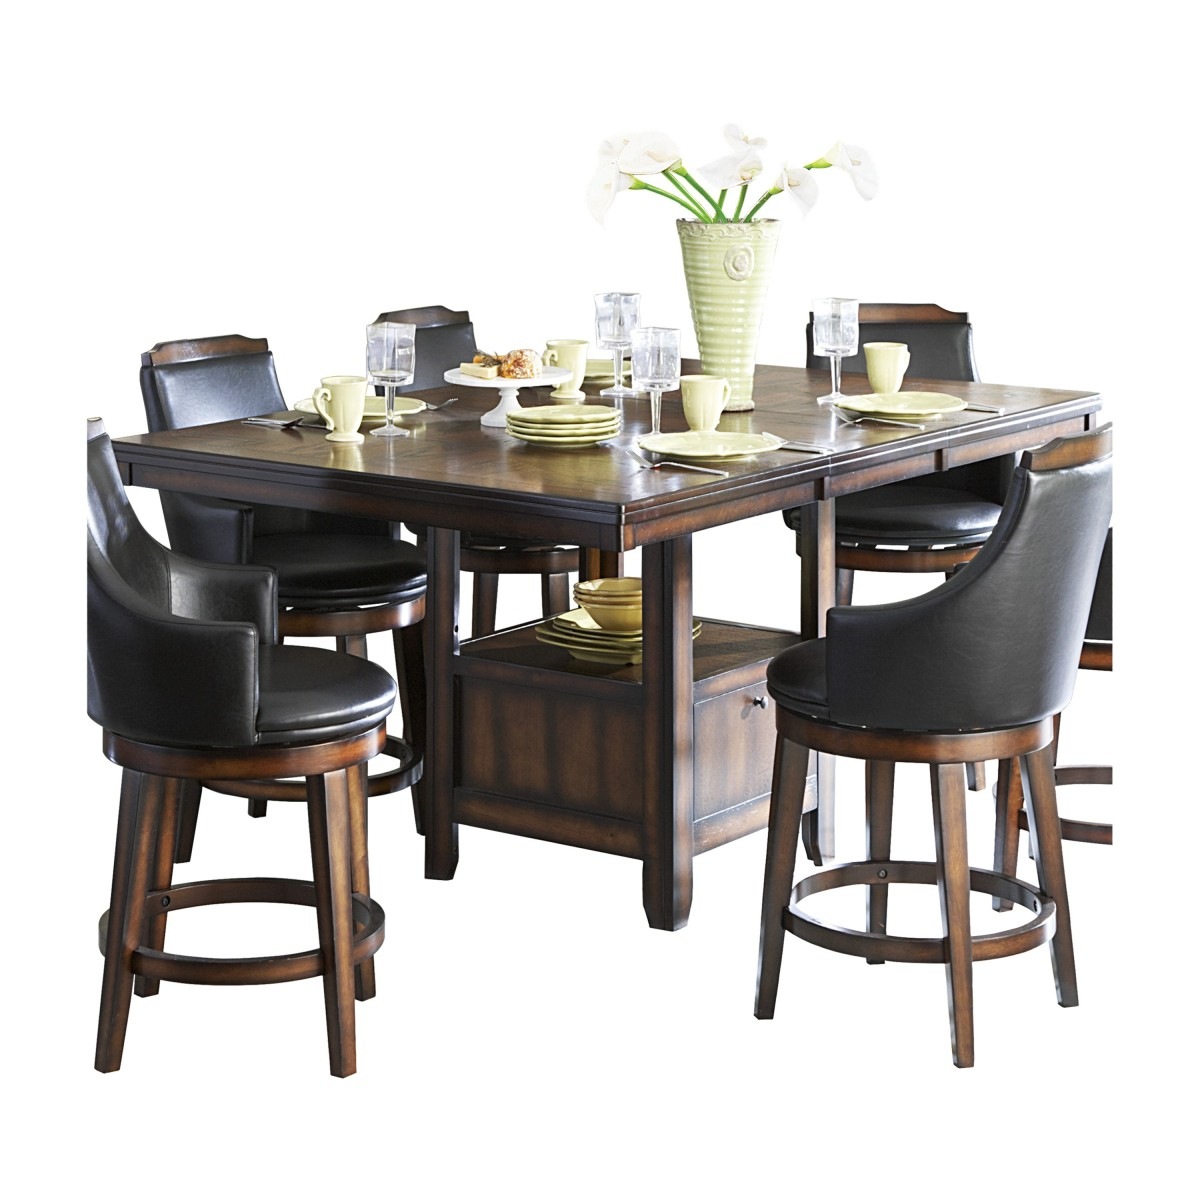 5447 36Xl* Counter Height Table With Storage Base Regarding Recent Andreniki Bar Height Pedestal Dining Tables (View 3 of 15)